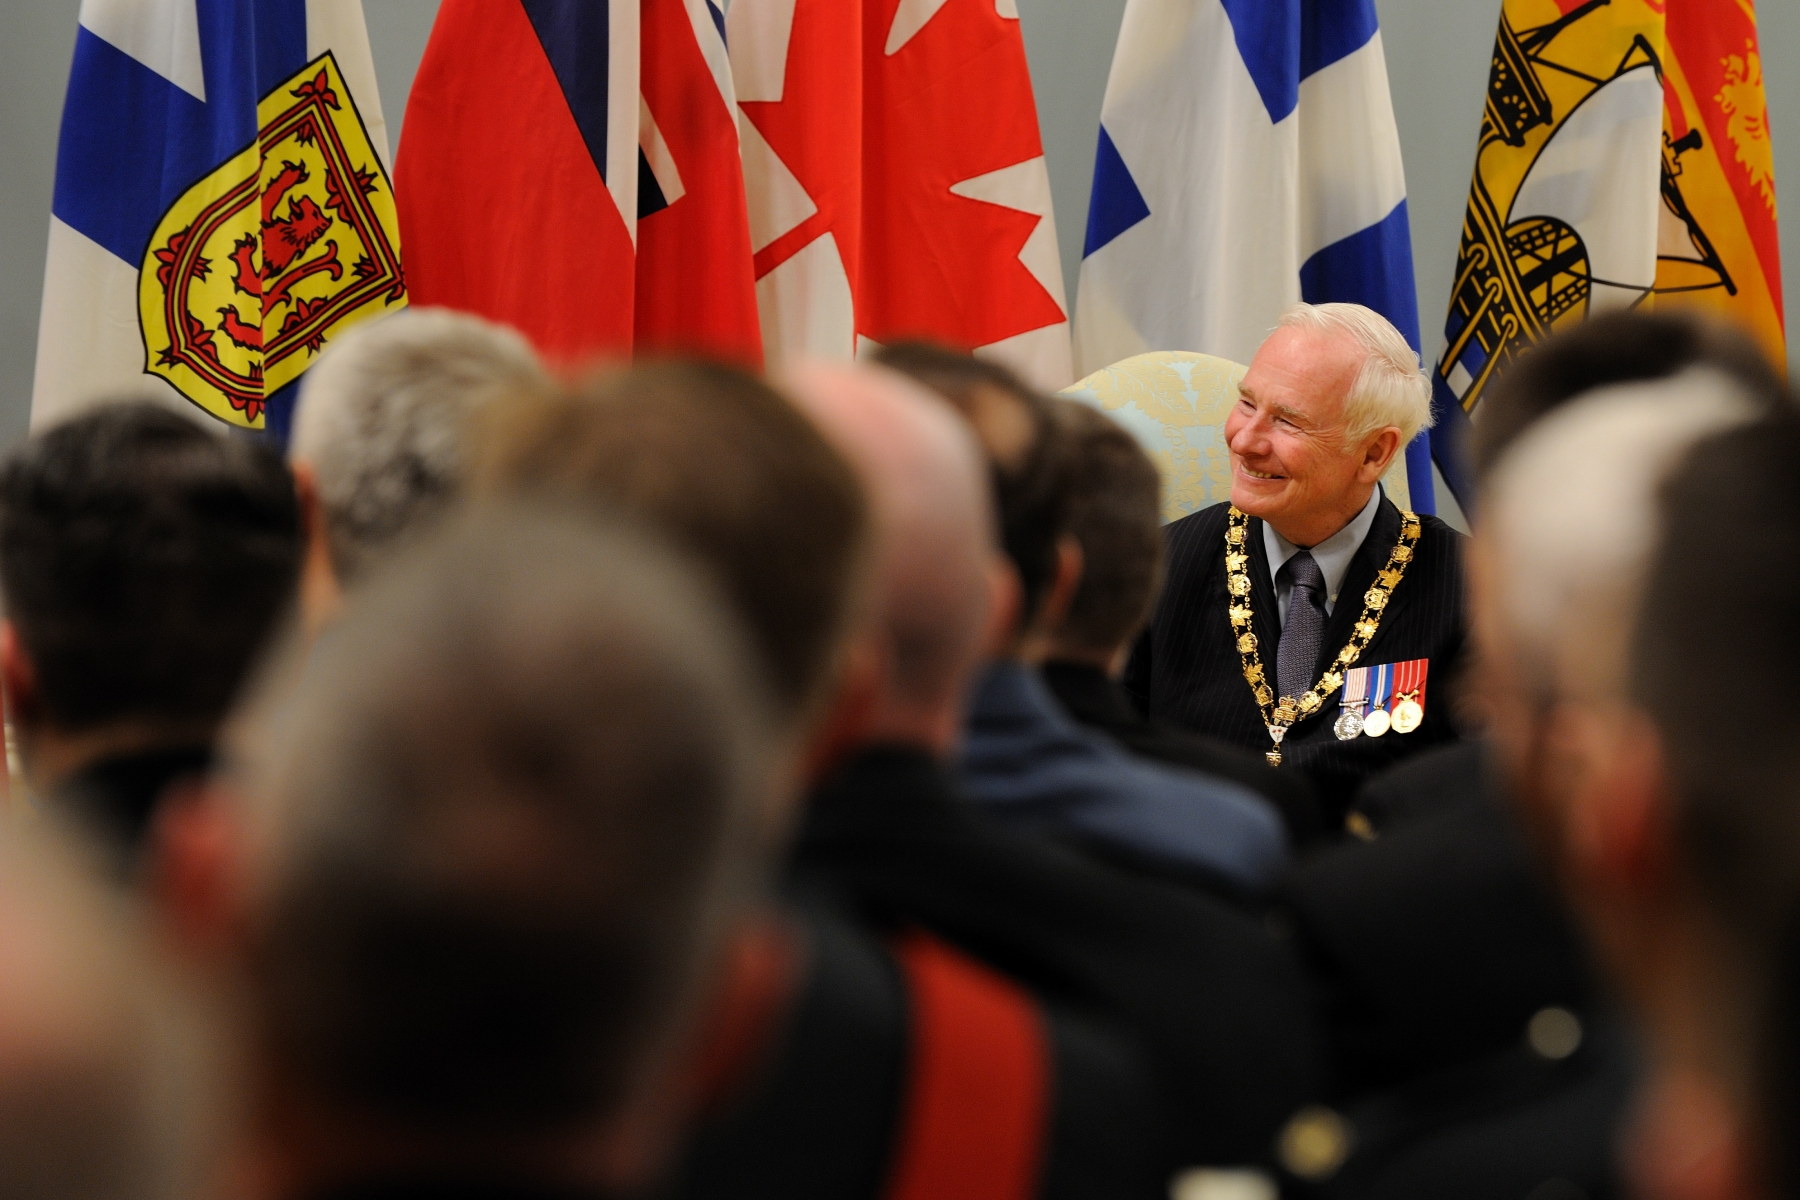 The Governor General and Commander-in-Chief of Canada presided over an Order of Military Merit investiture ceremony at Rideau Hall, on March 11, 2011. He bestowed the honour on two Commanders, 13 Officers and 41 Members.